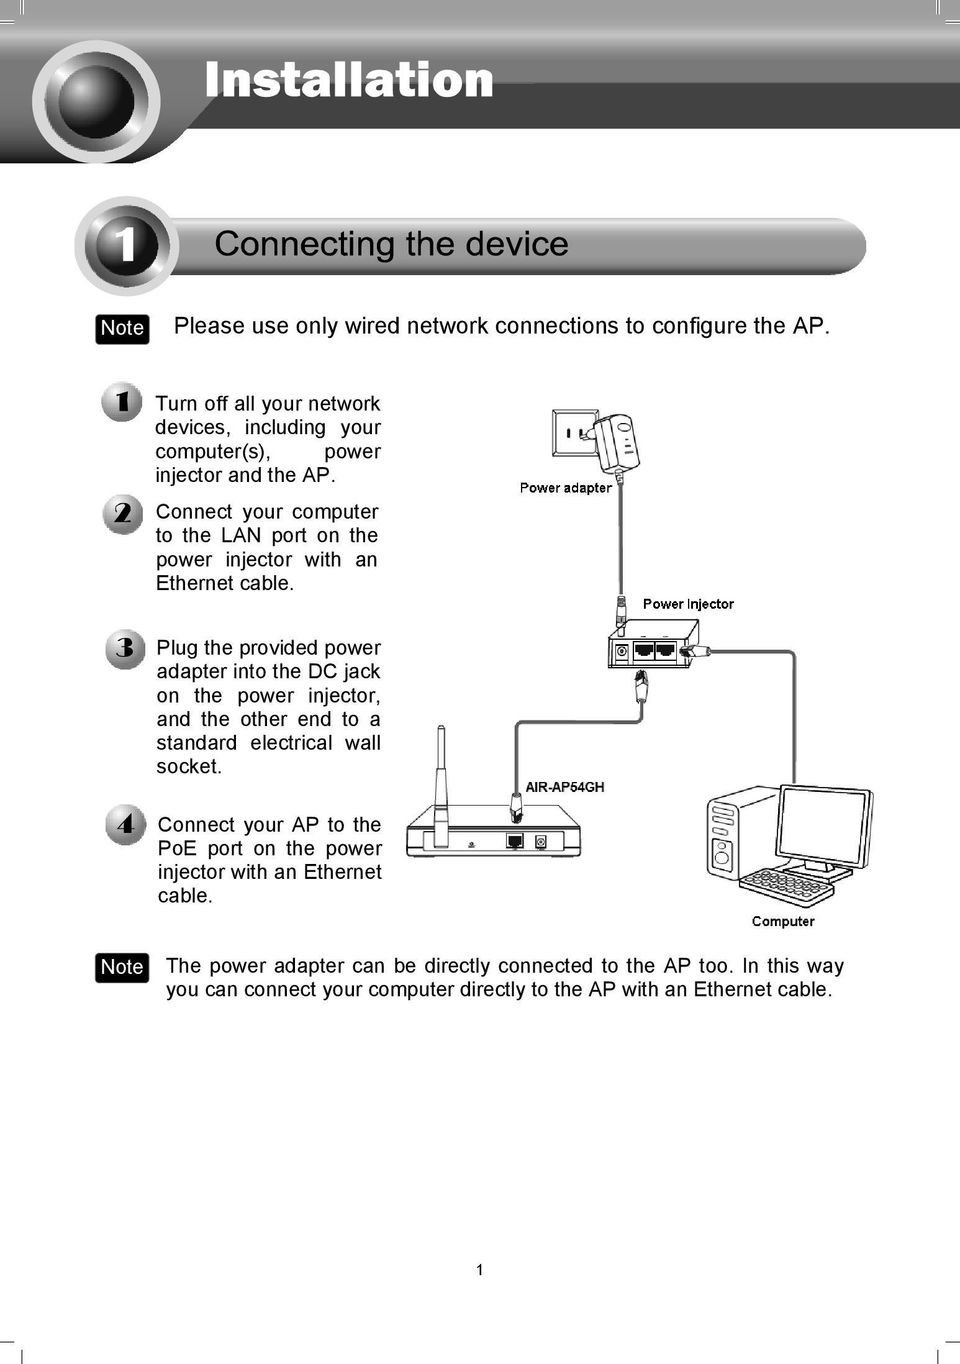 Connect your computer to the LAN port on the power injector with an Ethernet cable.